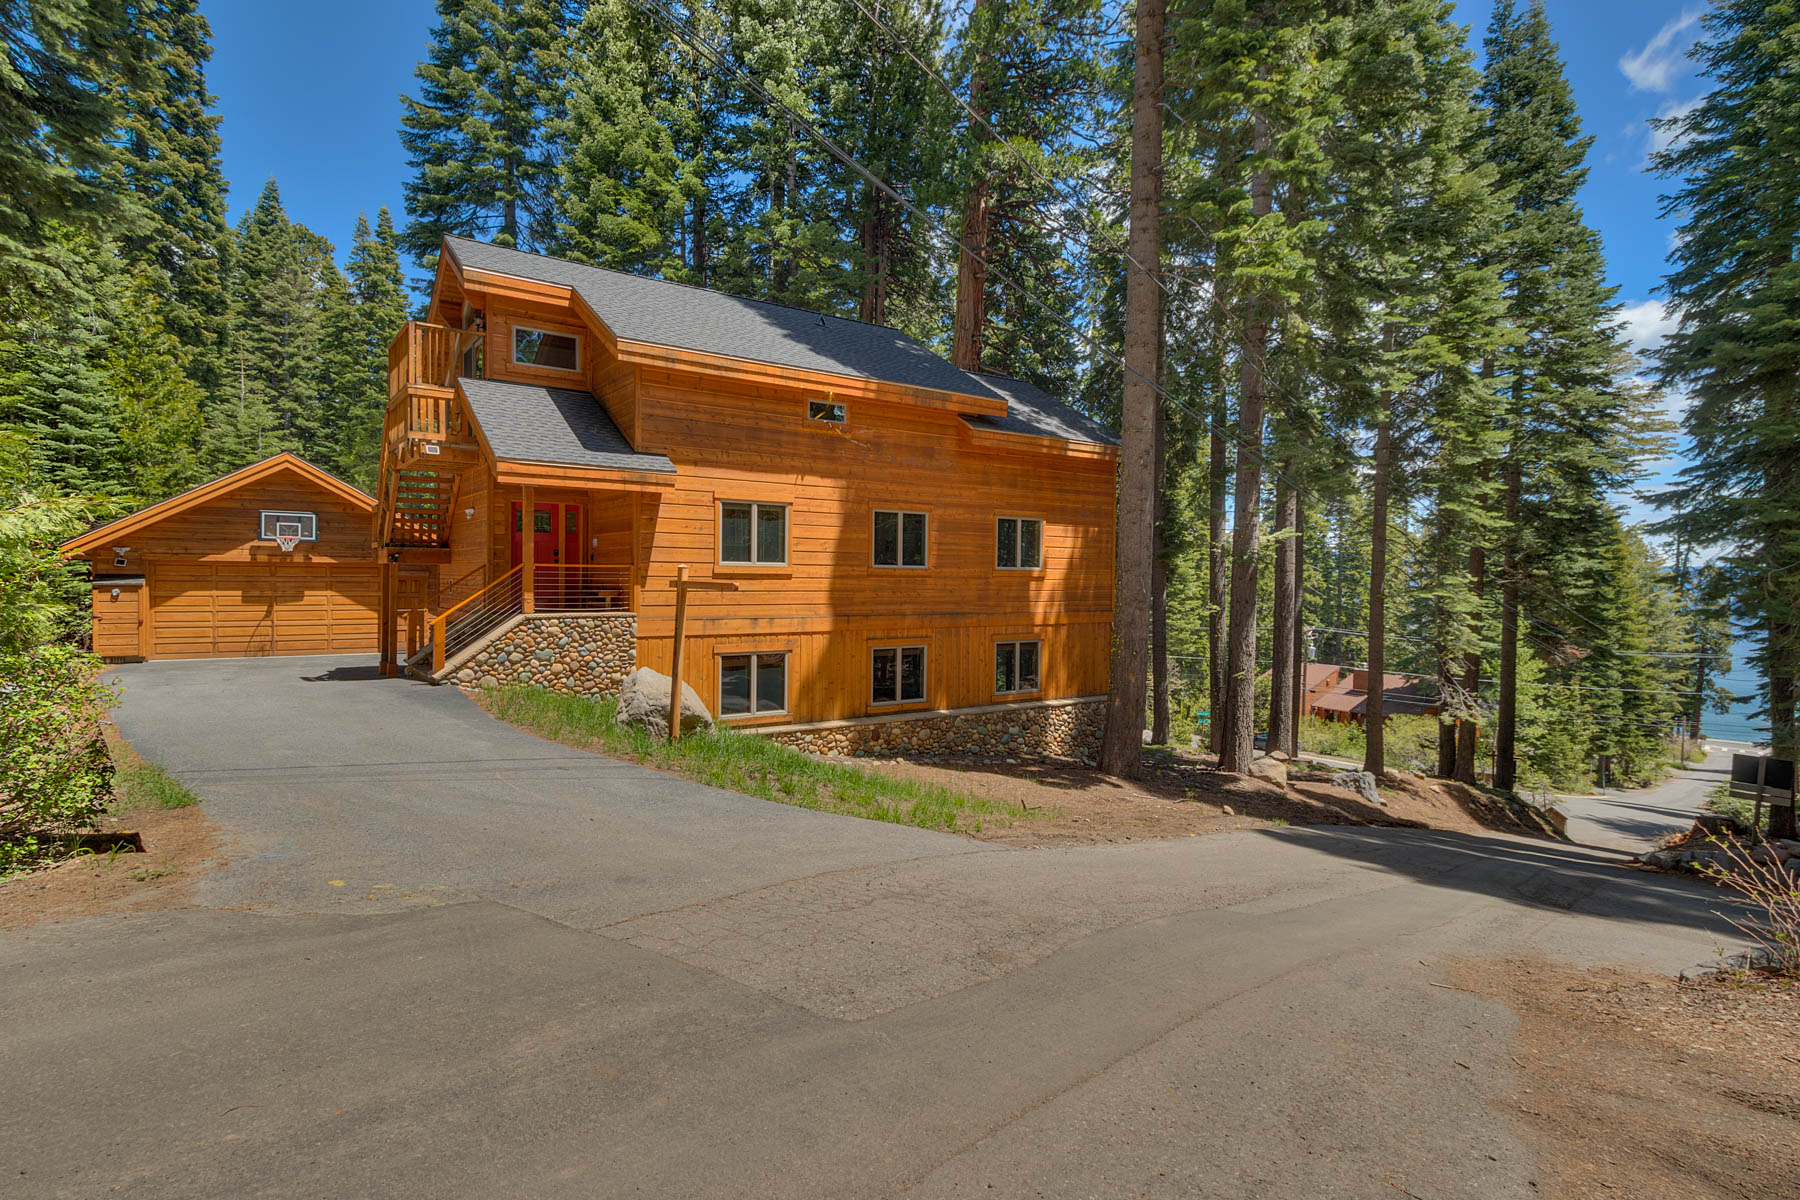 Additional photo for property listing at West Shore Retreat 194 Simplon Pass Road Homewood, California 96141 United States